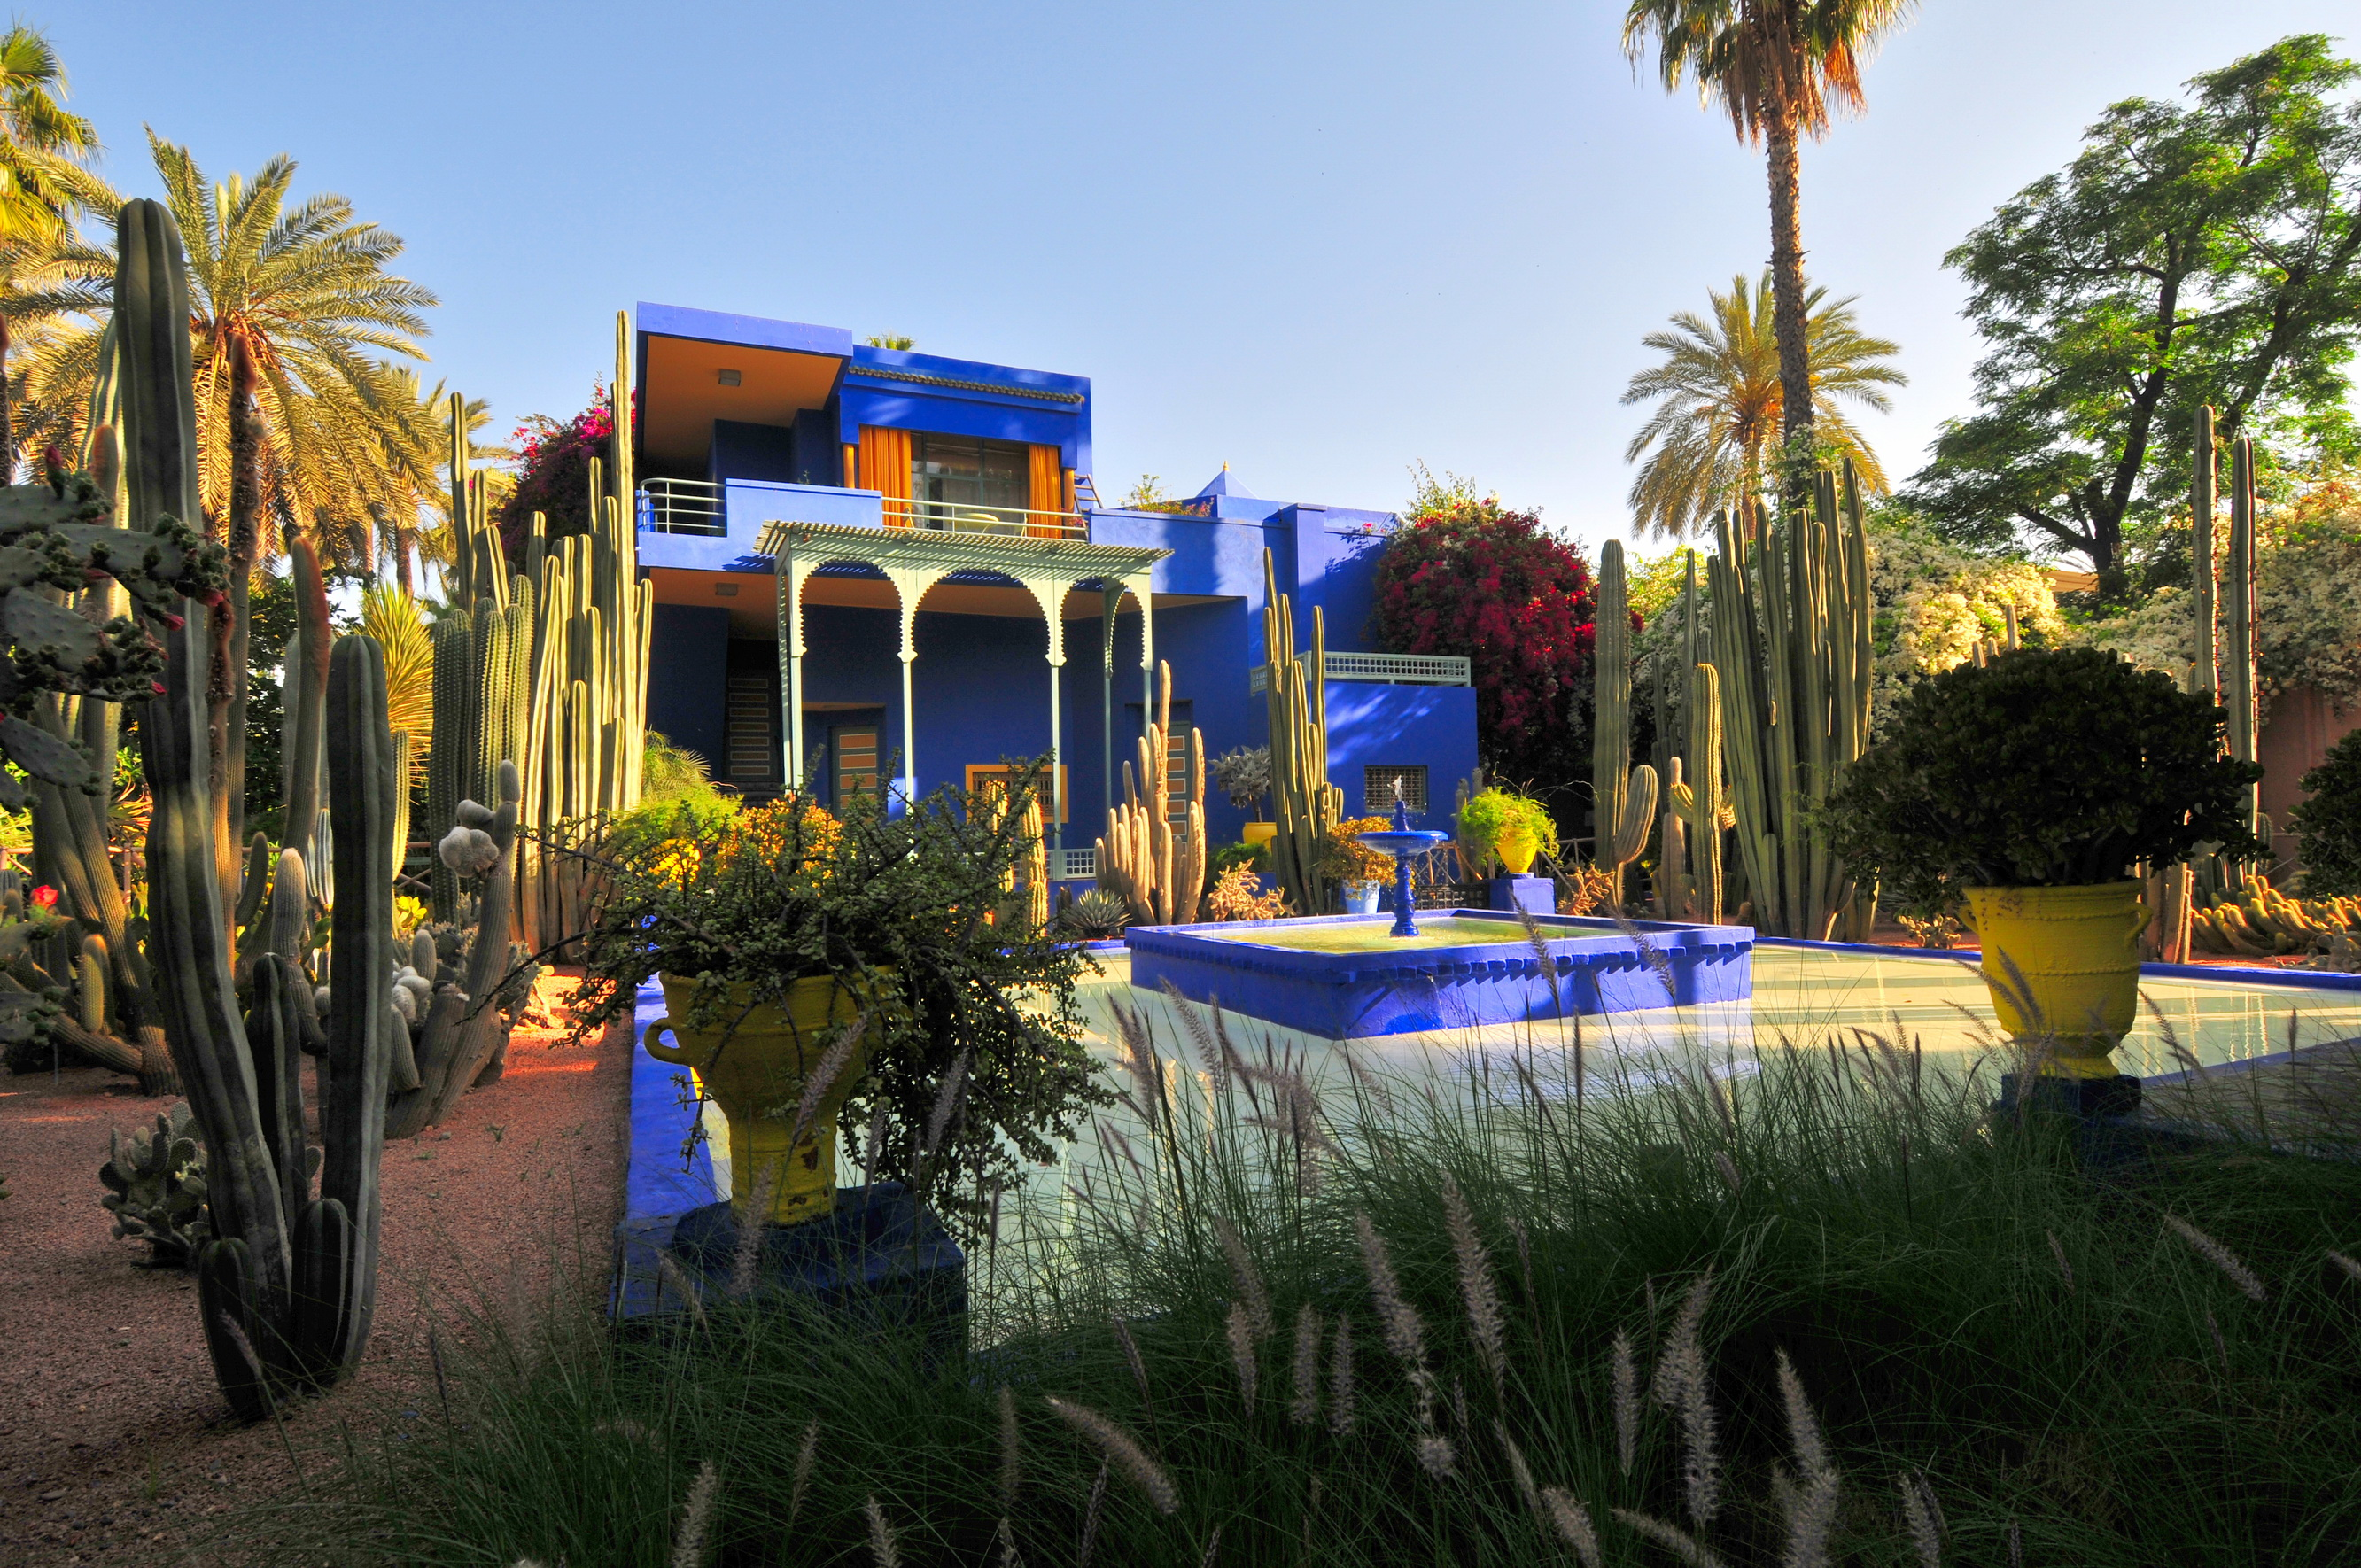 The high chroma ultramarine blue painted Art Deco style villa and surrounding gardens of Jardin Marjorelle designed by Jacques Marjorelle in the early 1930's and lovingly restored by Yves Saint Laurent and Pierre Bergé in 1980.